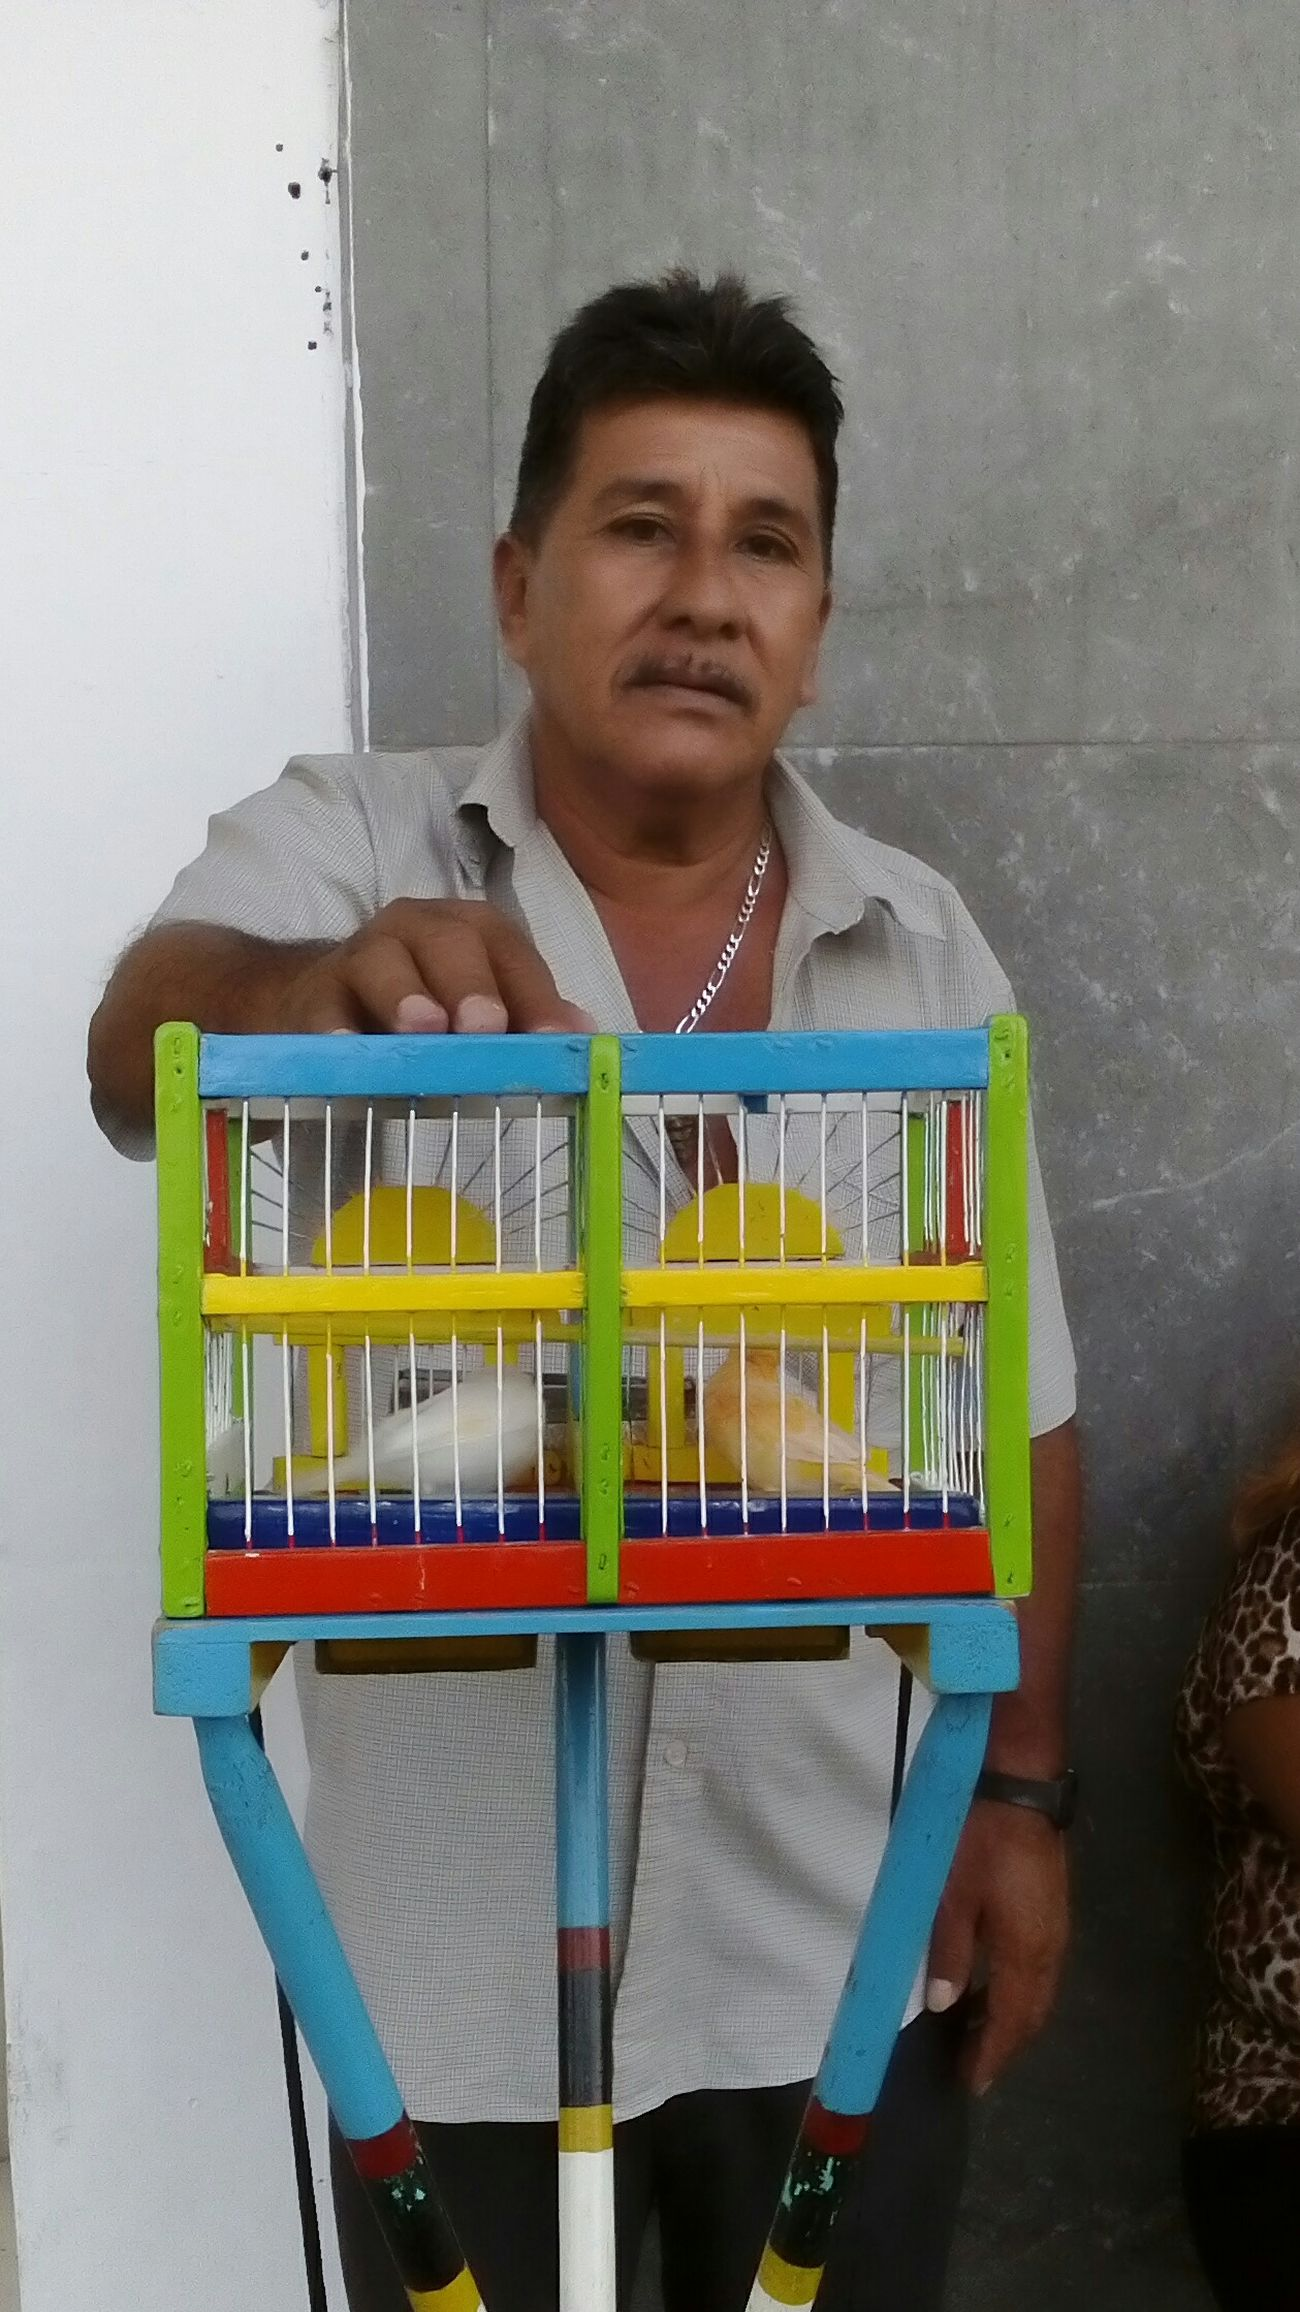 What Who Where Don Fermin Bird Trainer Traditions Mexico Birds Good Luck Future Reader these birds take one of the papers out of the box, they choose from many and your planet and recommendations for a better future.